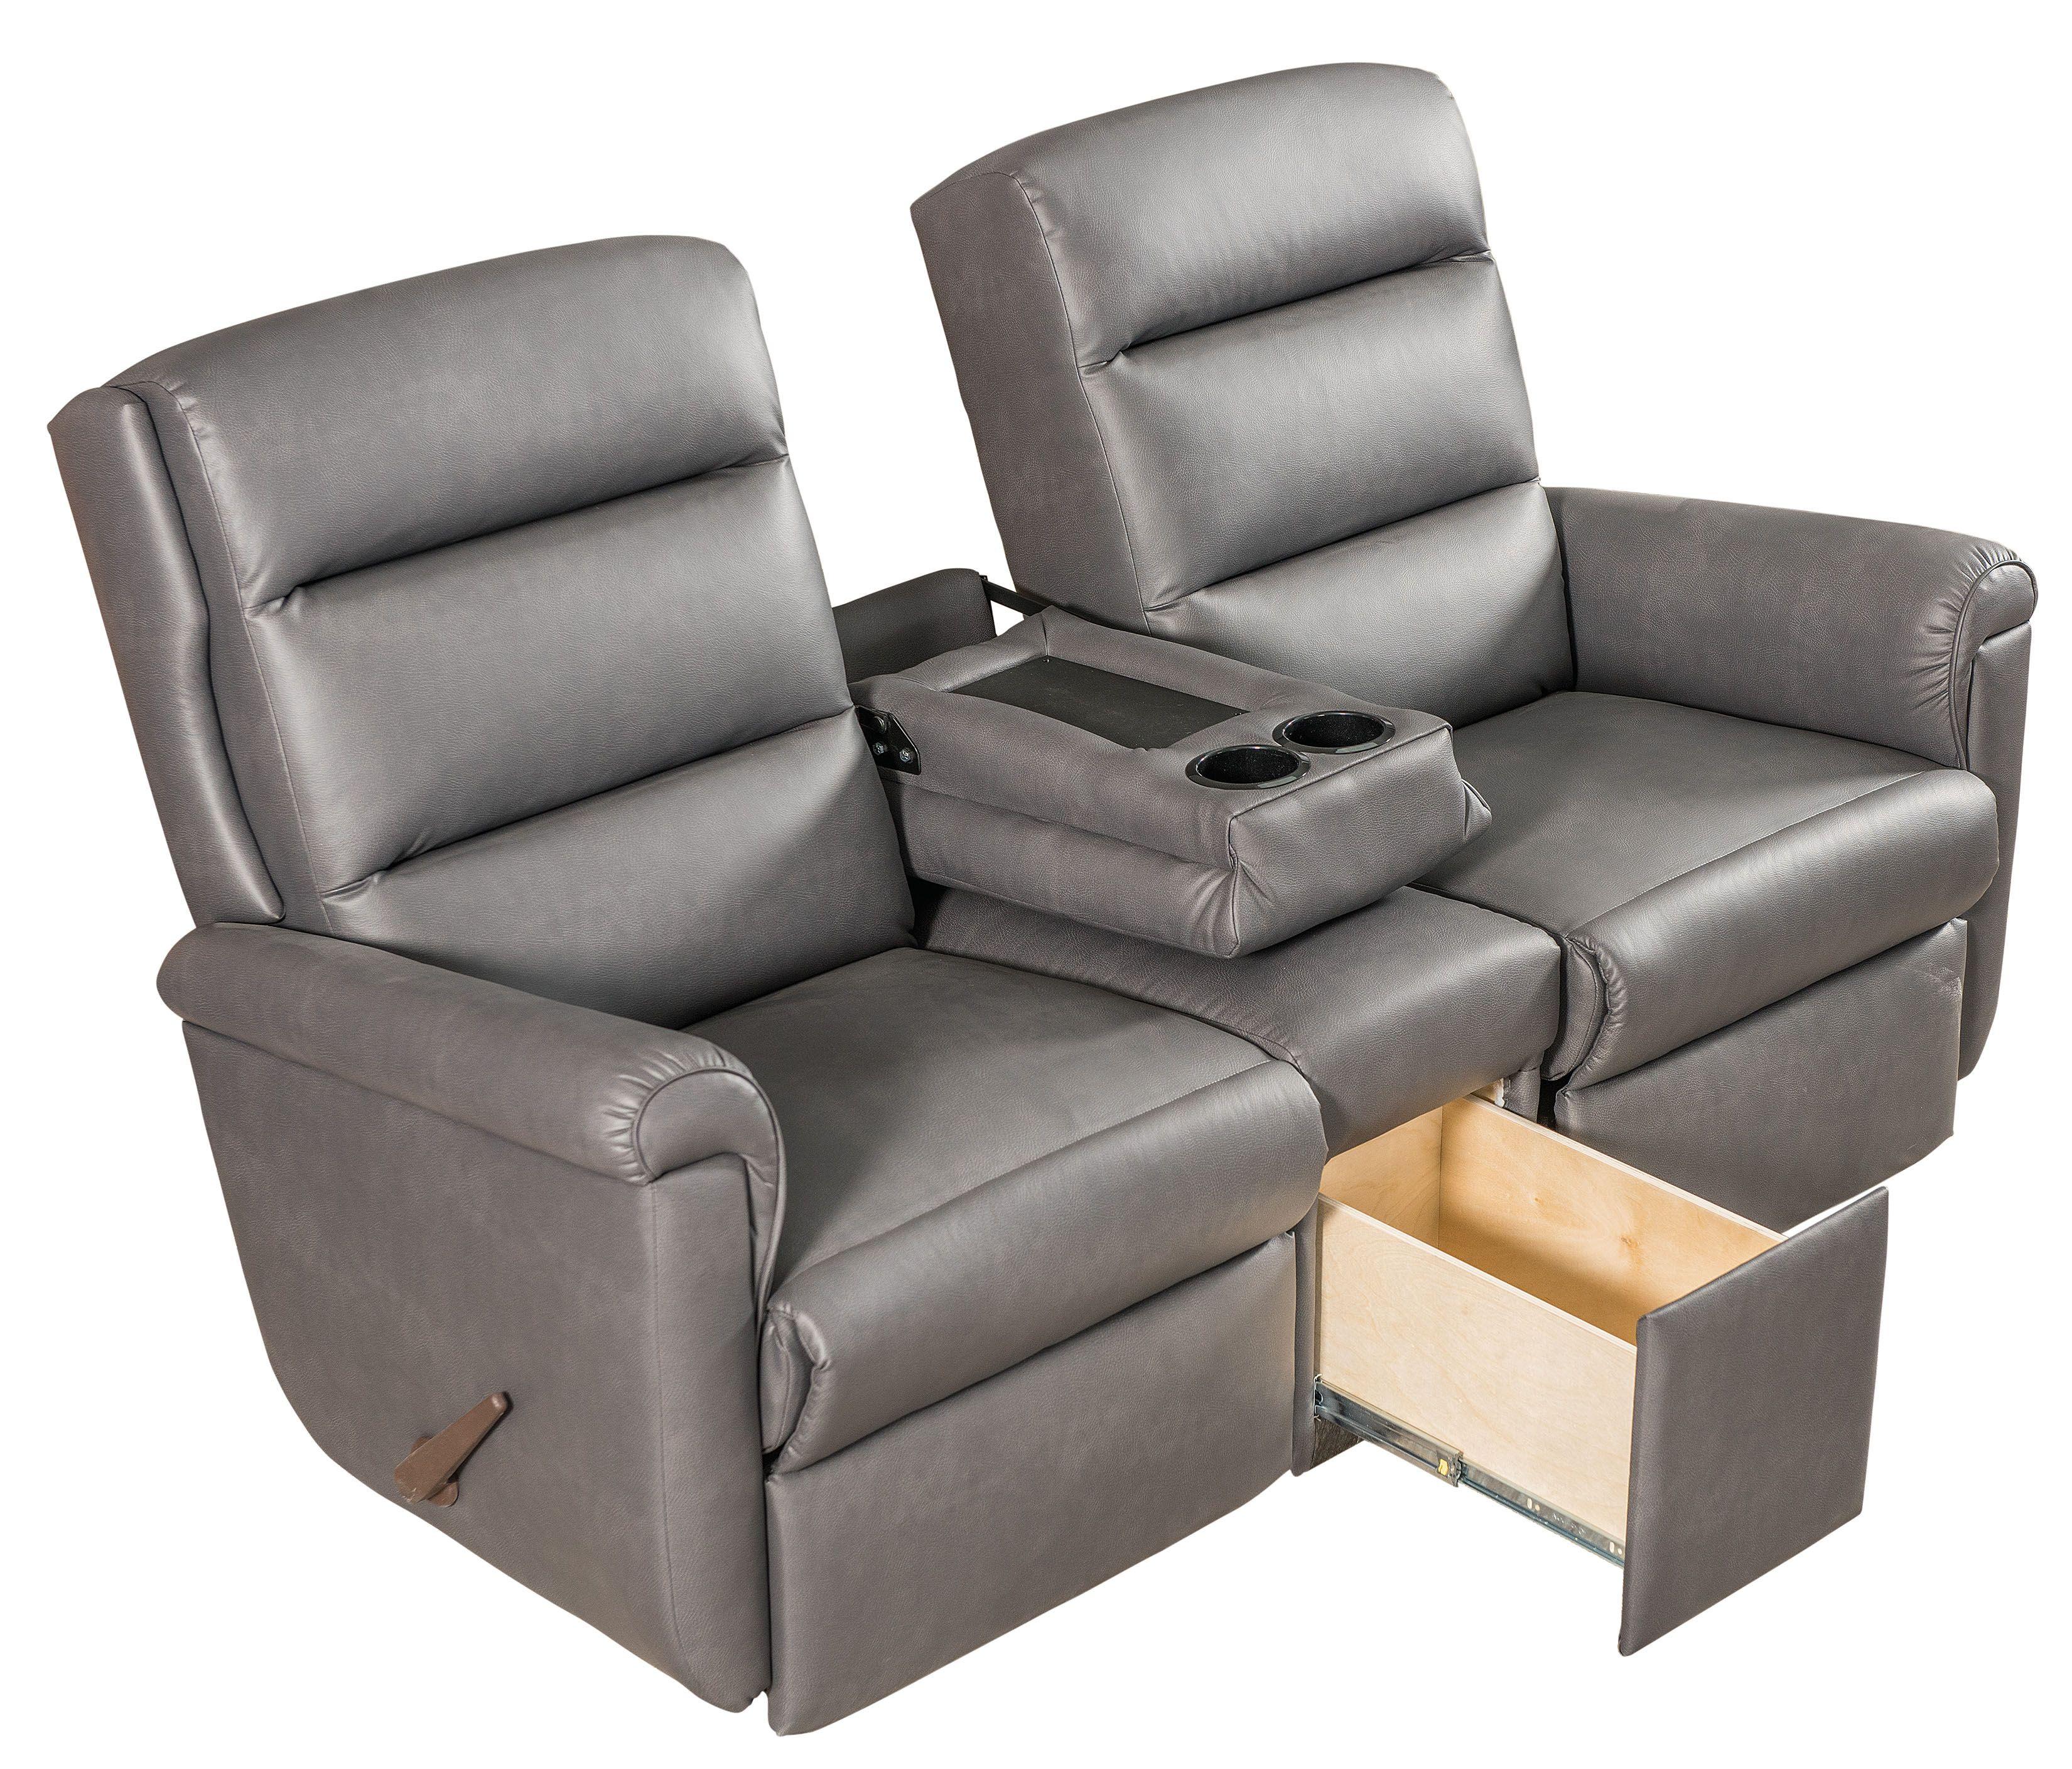 Lambright Elite Theater Seating Wall Hugger Recliners Available Manual Or Power Fold Down Center Console With Cup Holders Rv Furniture Rv Recliners Rv Sofa Recliner with cup holder and storage